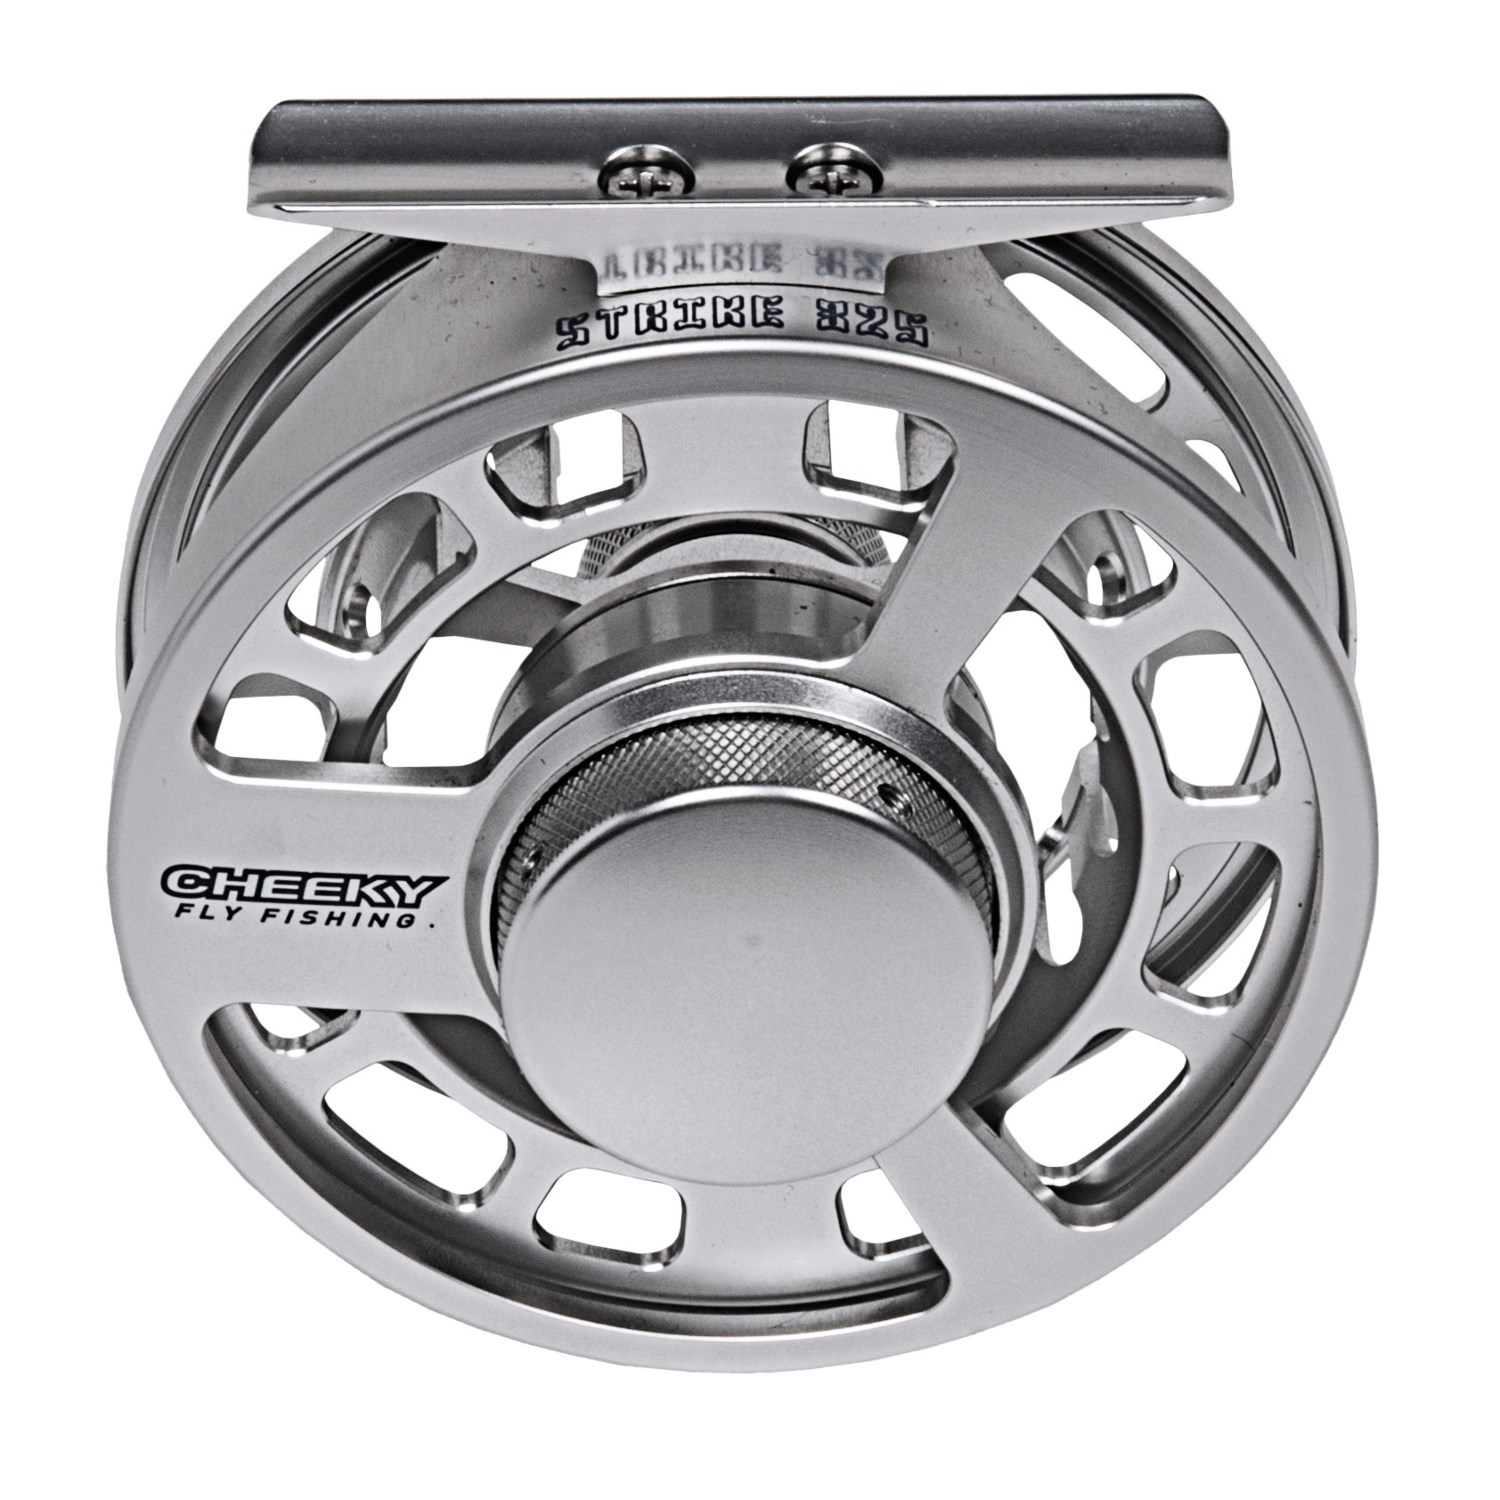 Cheeky fly fishing strike 325 fly reel save 47 for Cheeky fly fishing